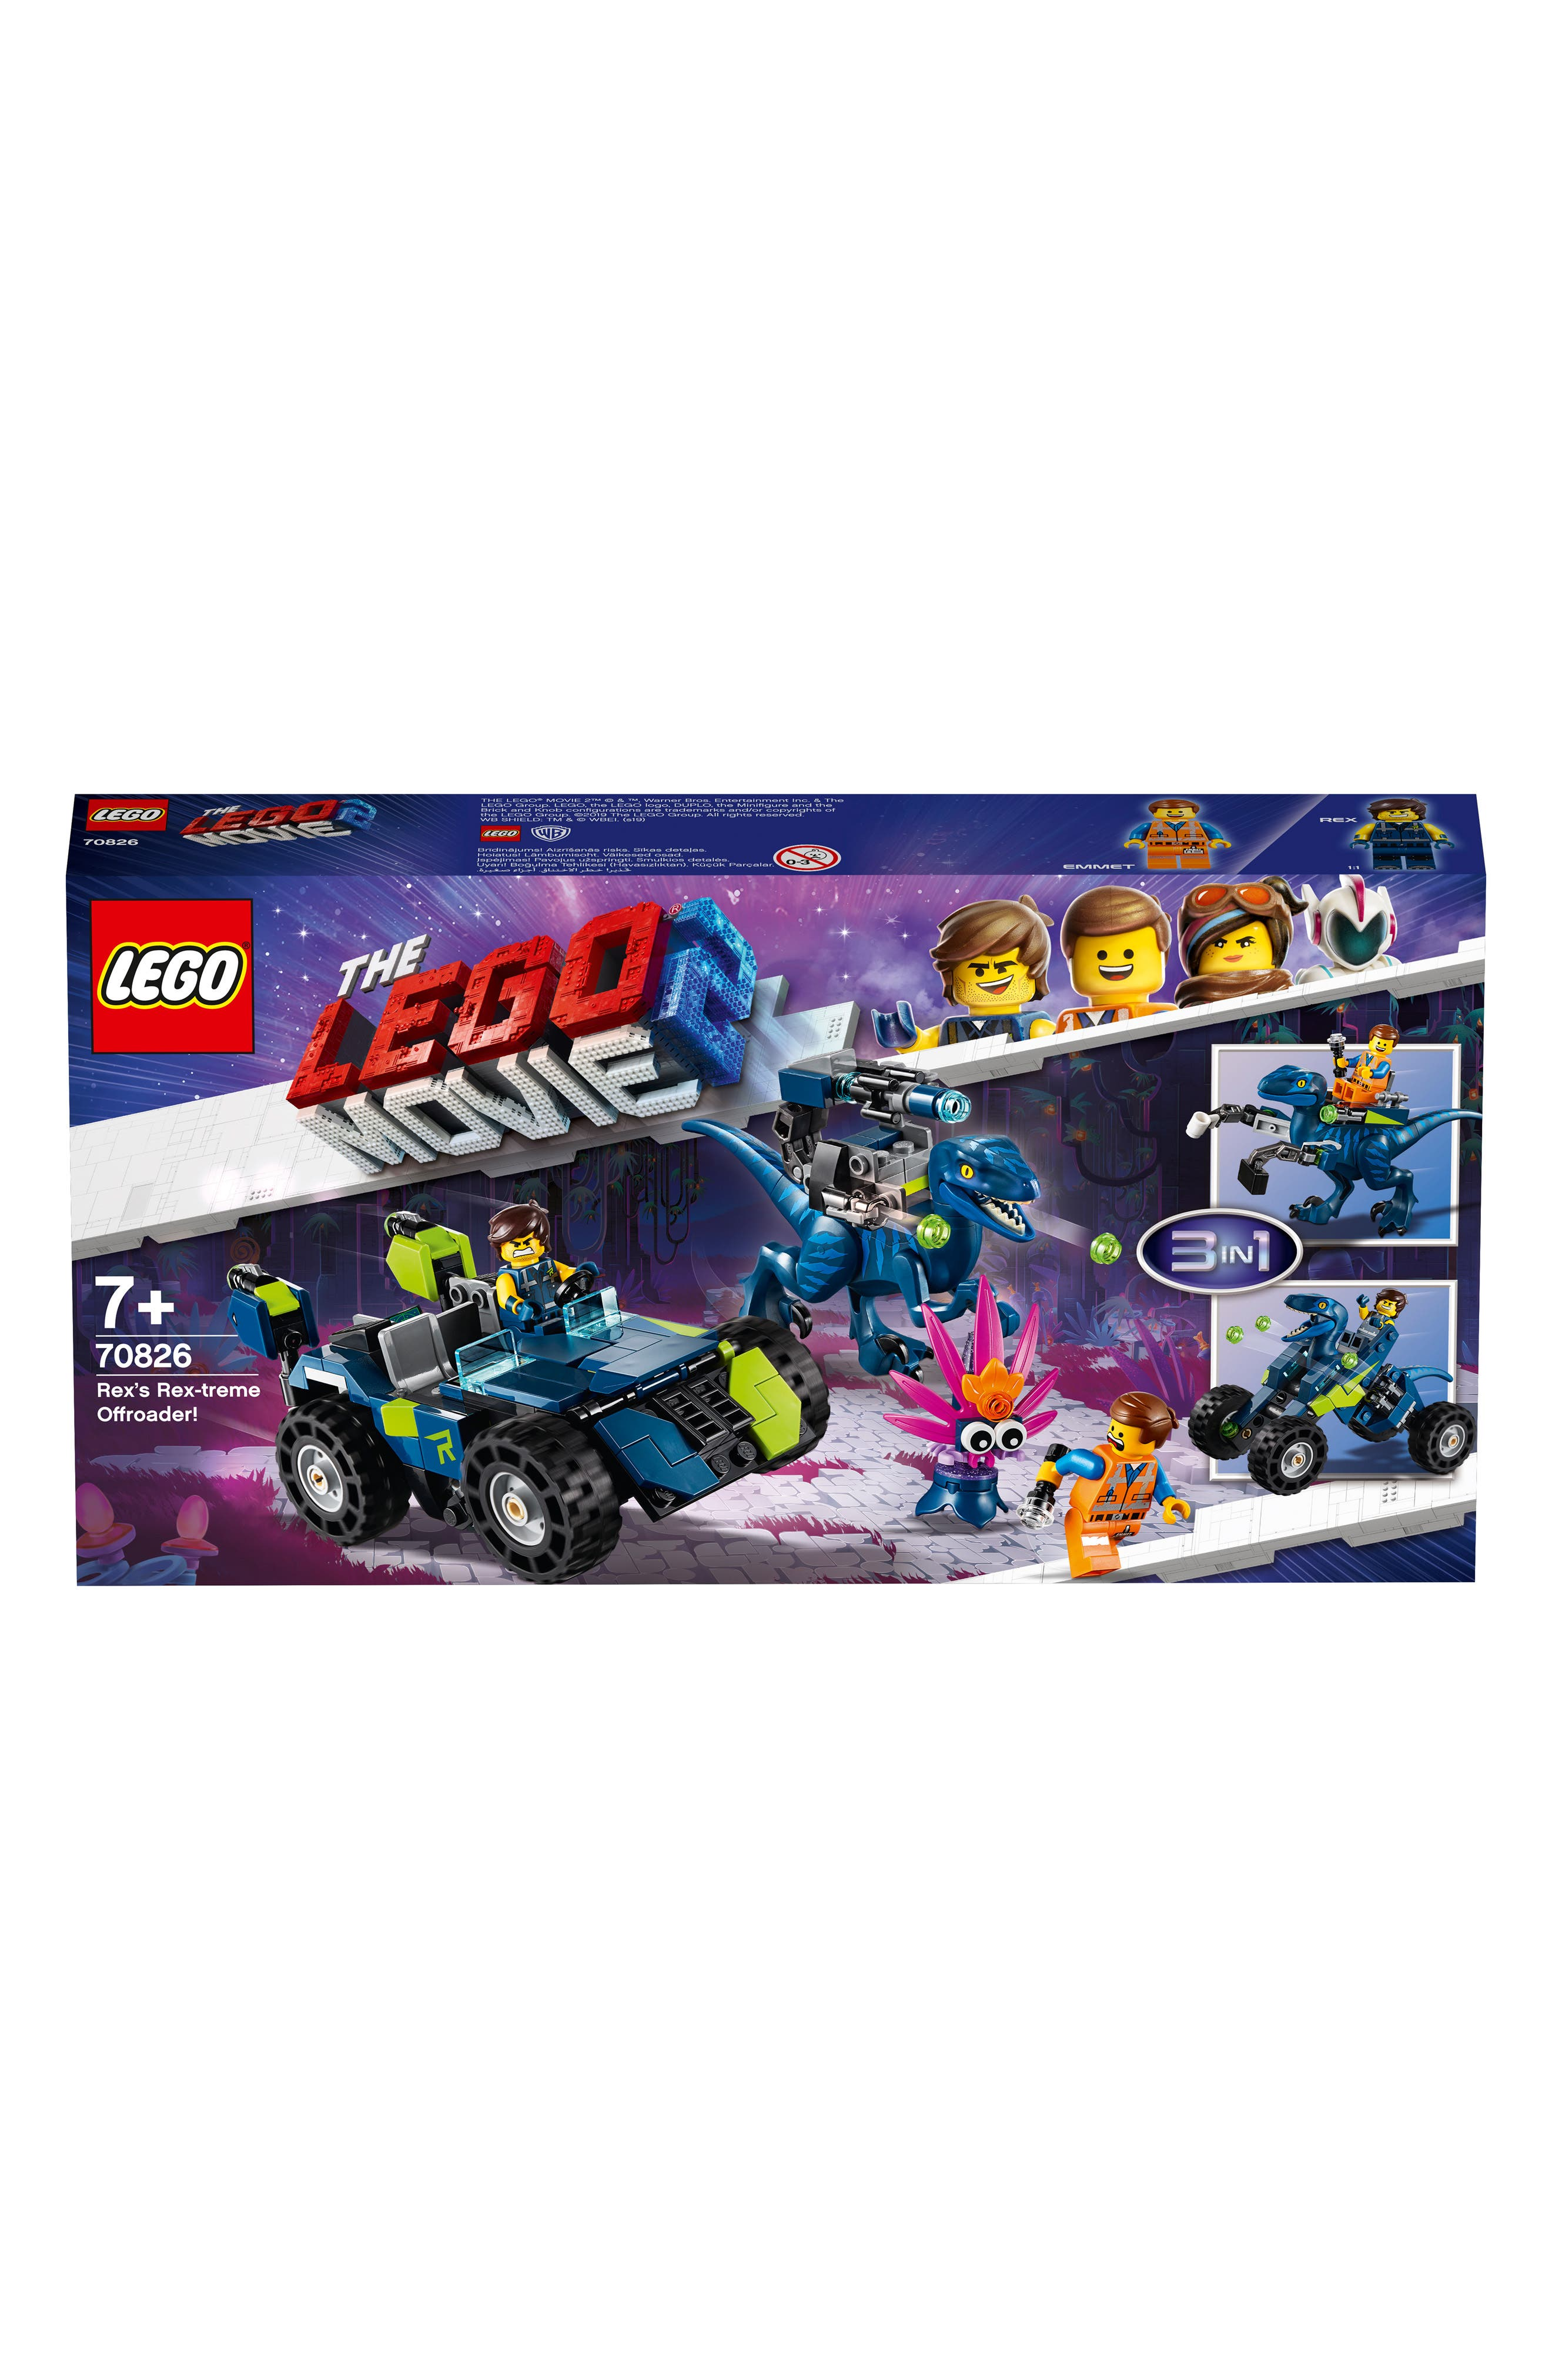 LEGO<SUP>®</SUP>,                             The LEGO<sup>®</sup> Movie 2 Rex's 3-in-1 Rex-treme Offroader Toy - 70826,                             Alternate thumbnail 2, color,                             960